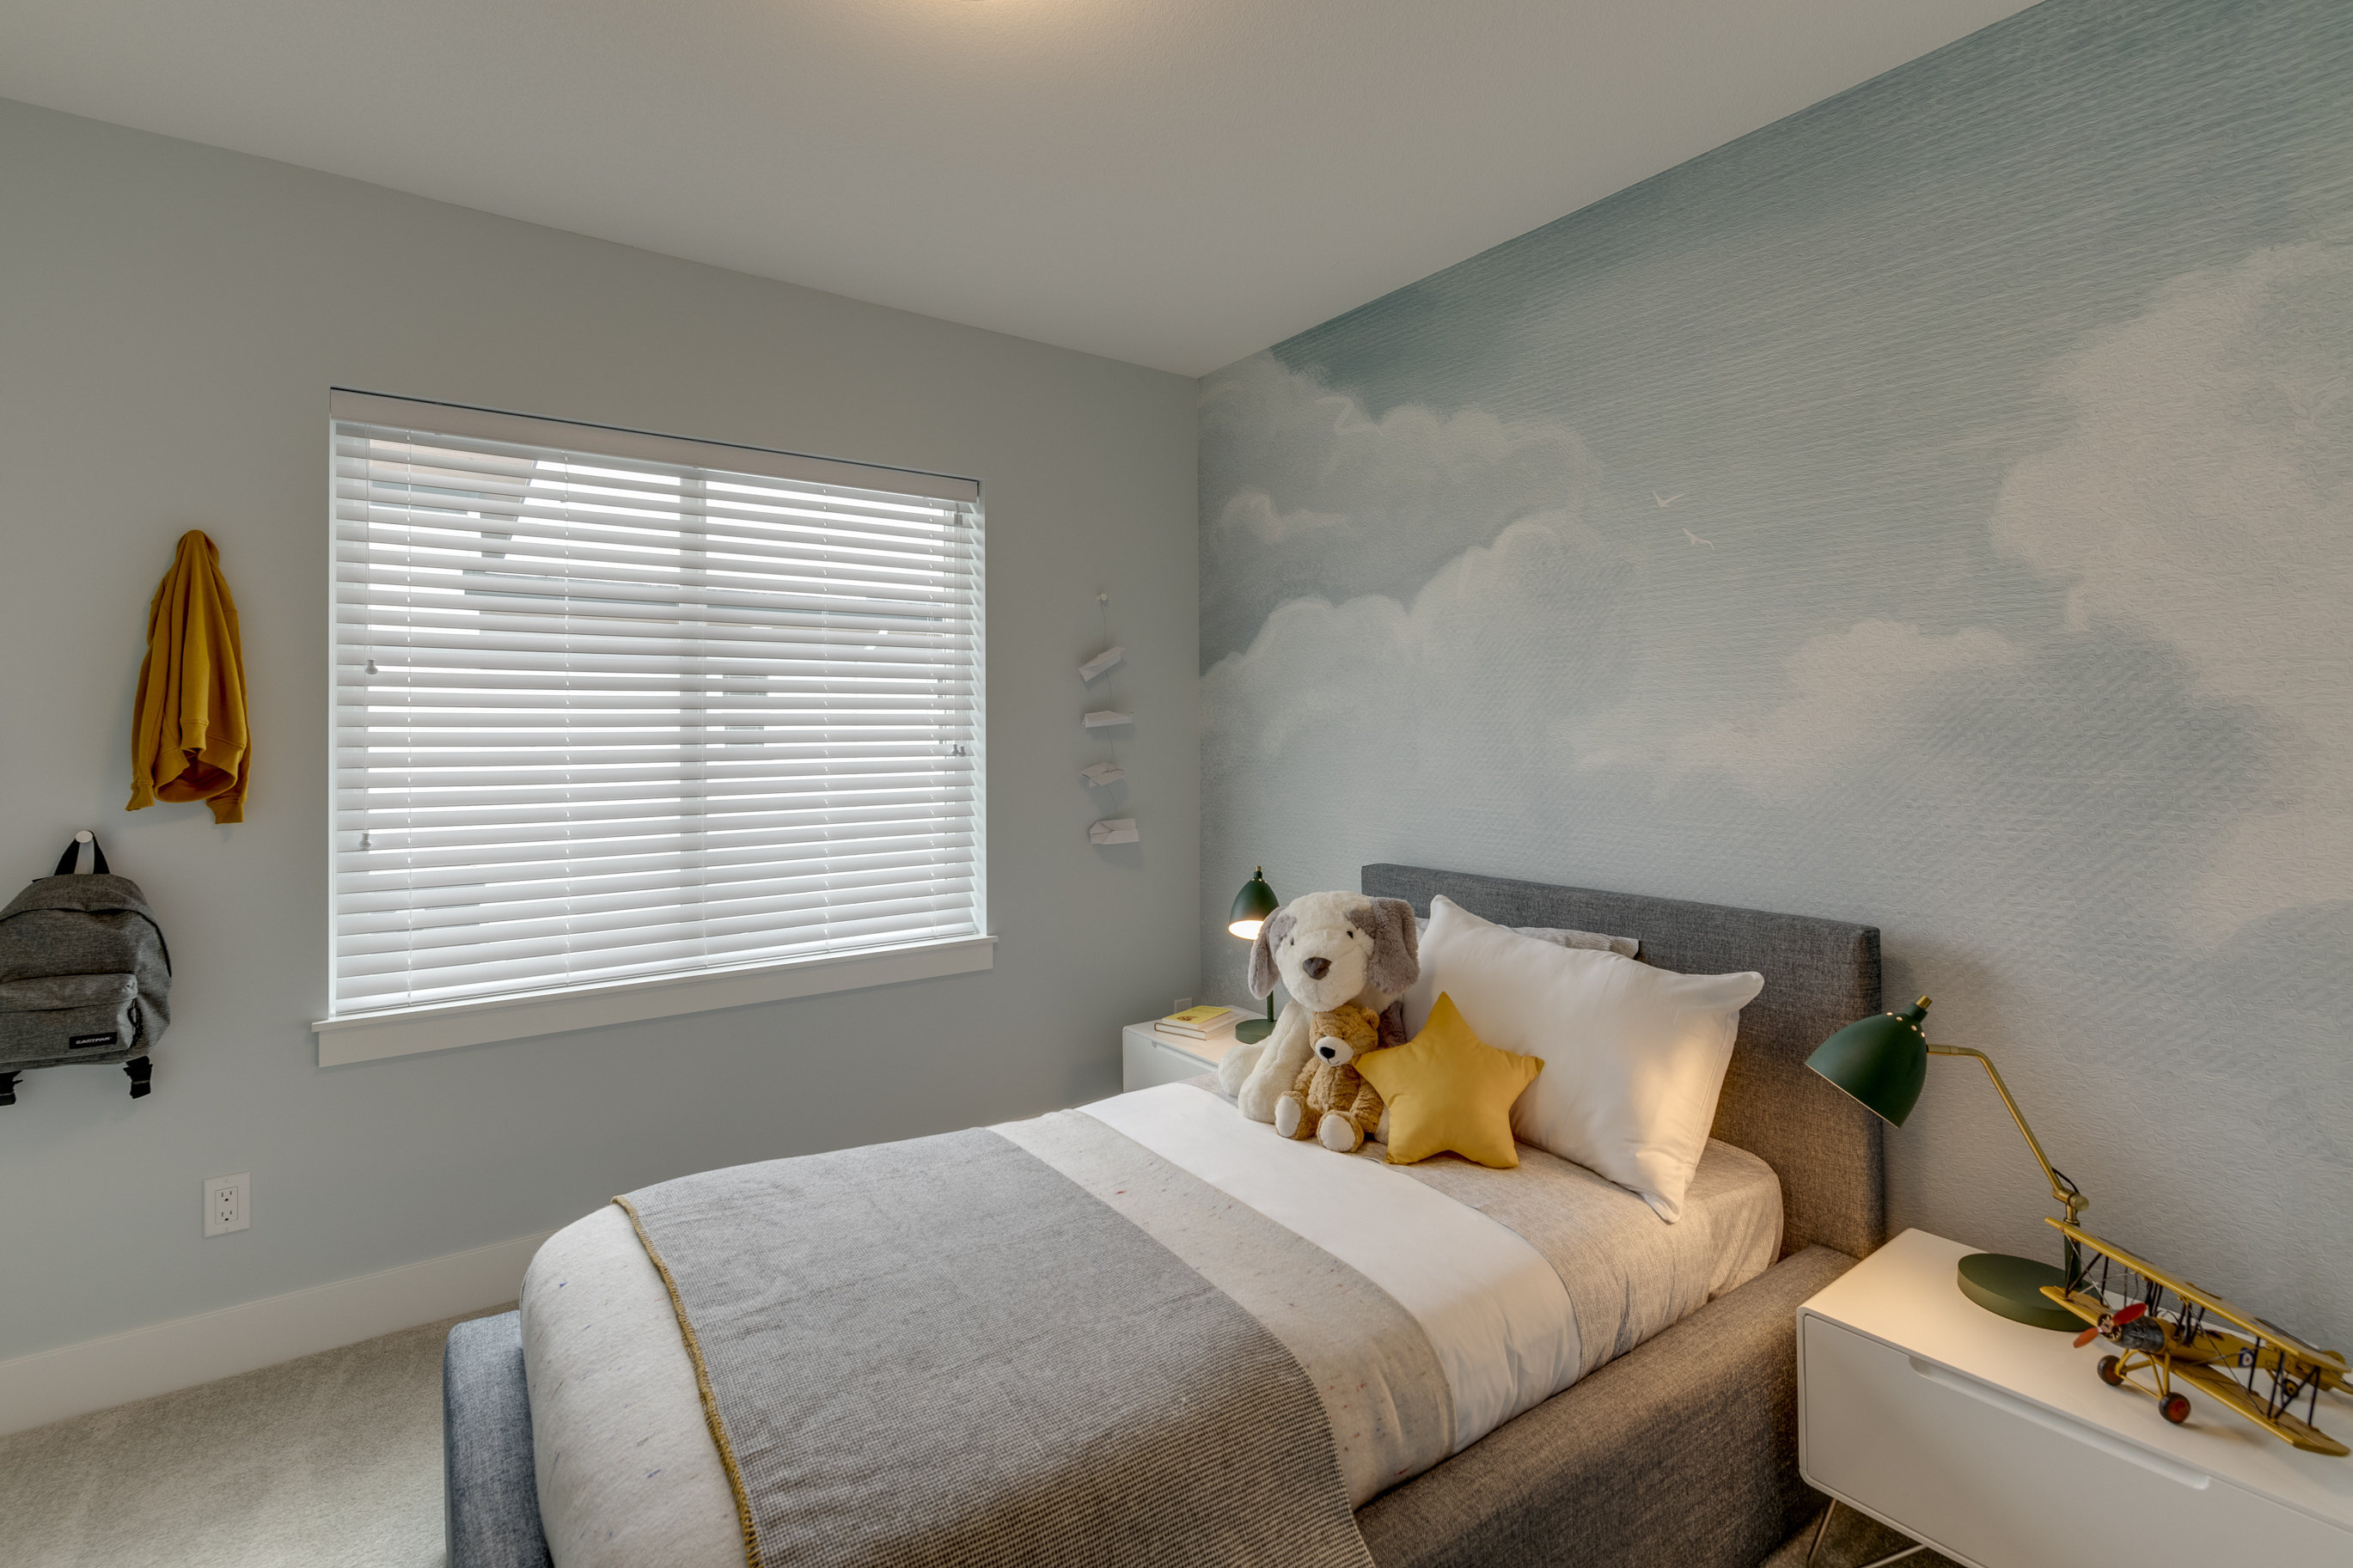 Bedroom - 22127 48a Ave Langley Twp, BC V3A 3Z7 Canada!